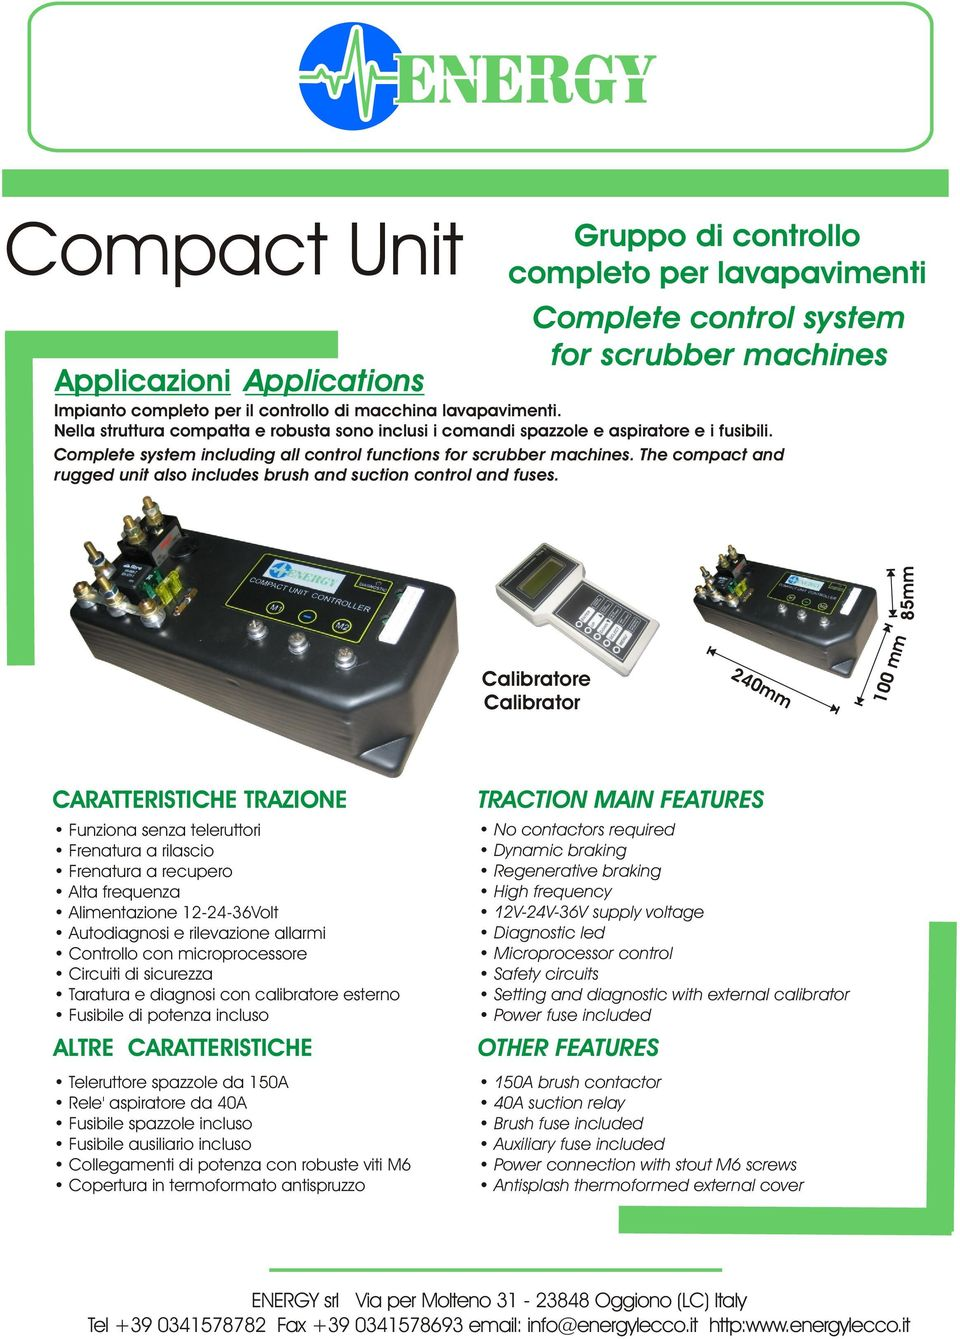 The compact and rugged unit also includes brush and suction control and fuses.